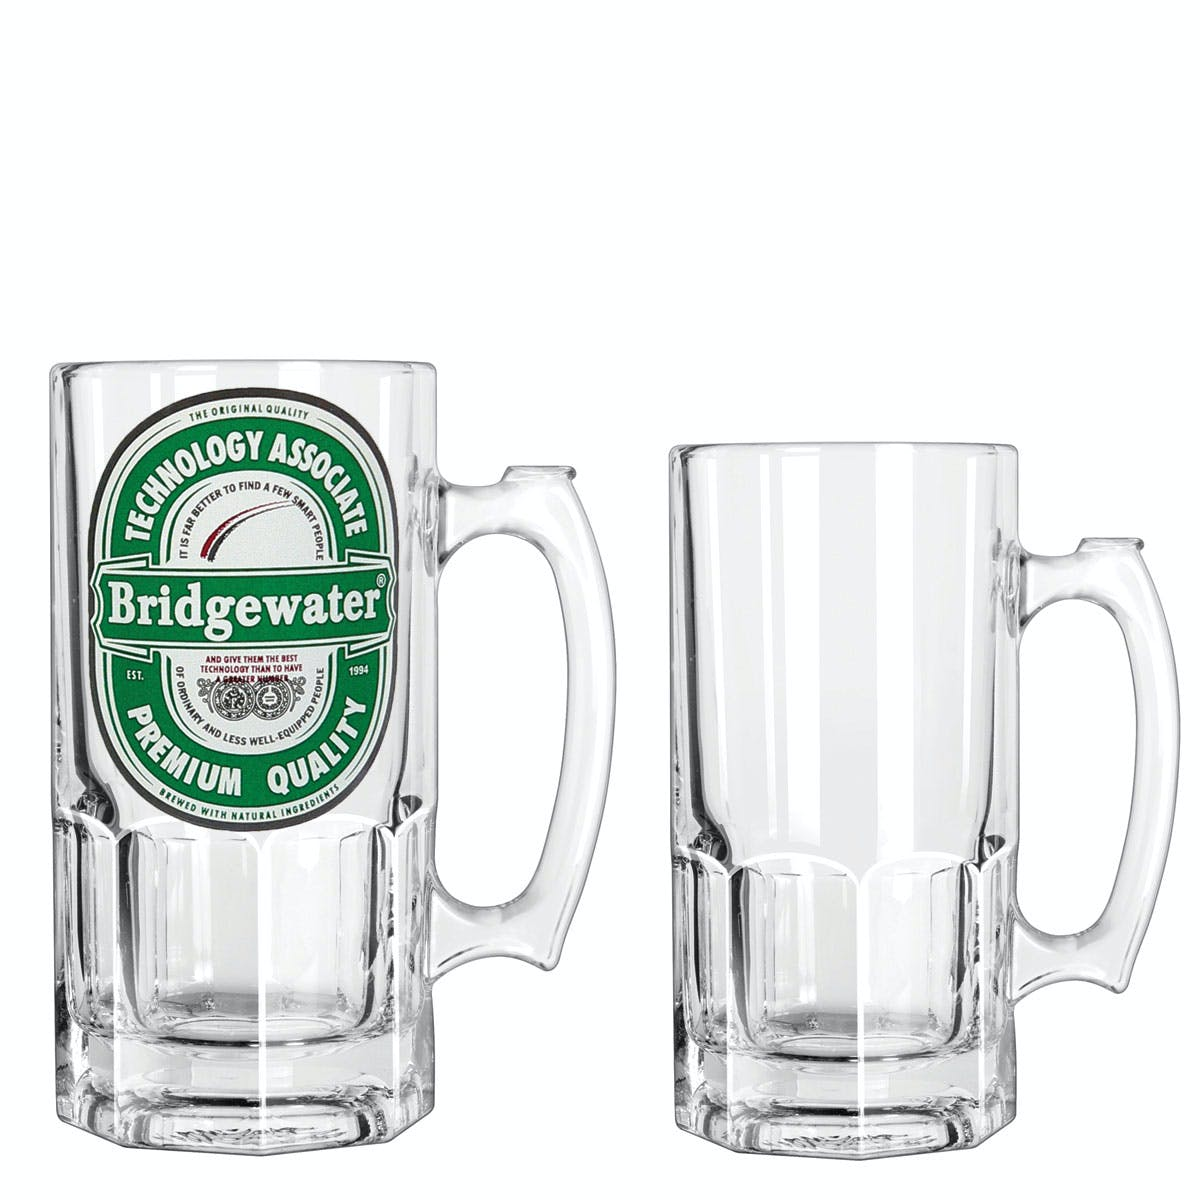 34 Oz. Clear Glass Beer Tankard (Item # HCMJL-IZSTA) Customized Beer Mug sold by InkEasy